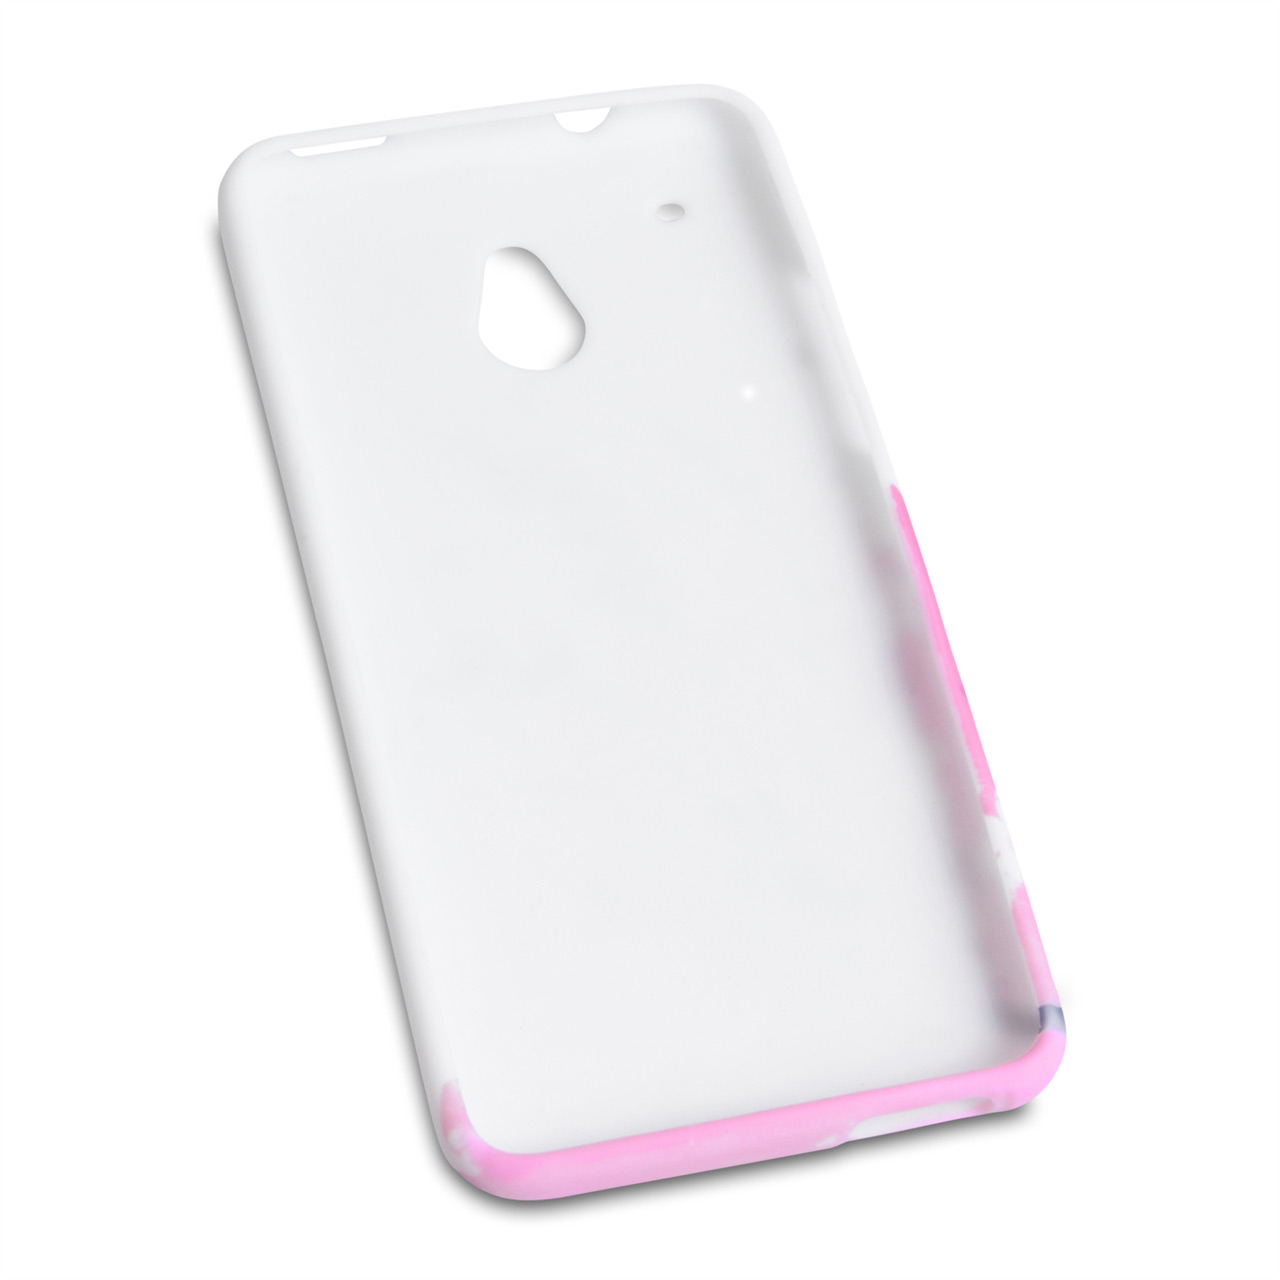 YouSave Accessories HTC One Mini Floral Bee Silicone Gel Case